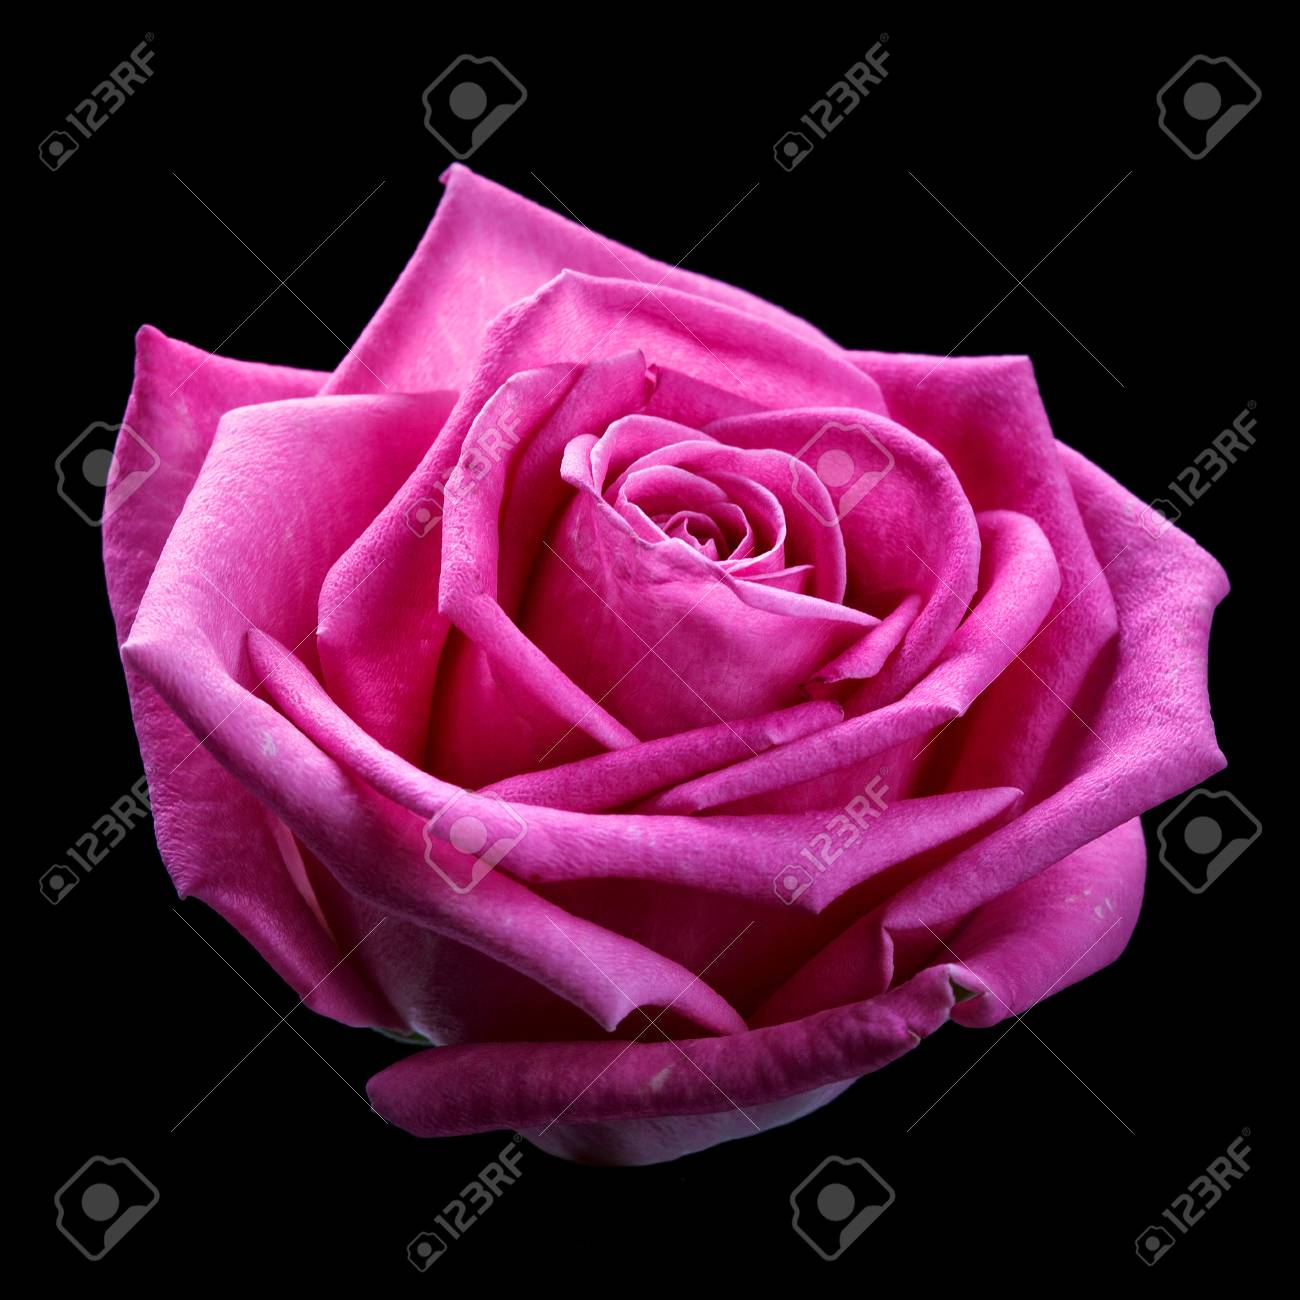 Beautiful pink rose head isolater on black background stock photo beautiful pink rose head isolater on black background stock photo 68640276 izmirmasajfo